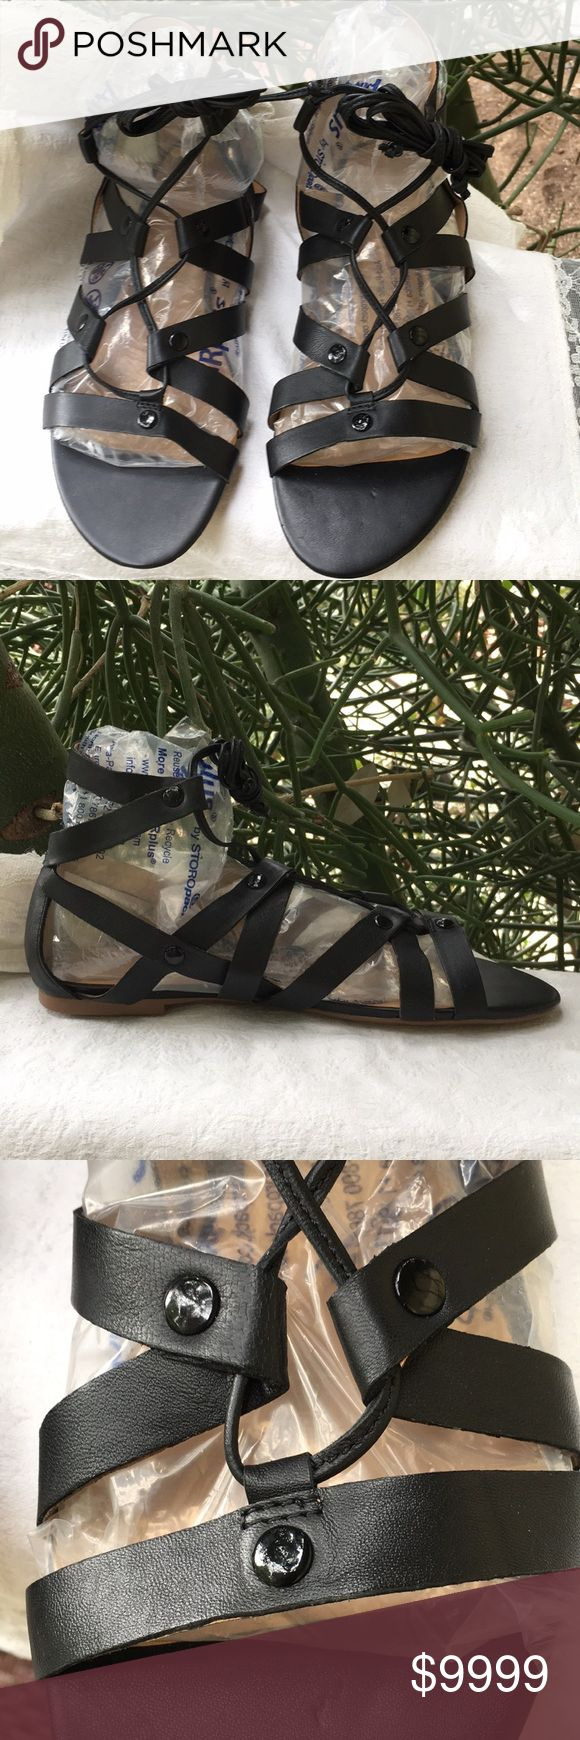 NWOB! Banana Republic Gladiator Sandals New without box!  Beautiful black gladiator sandals by Banana Republic-Hello Sole Mate. These have never been unwrapped or worn.  They can be worn as seen in second pic or laced up leg.  Size: 8.5M Banana Republic Shoes Sandals